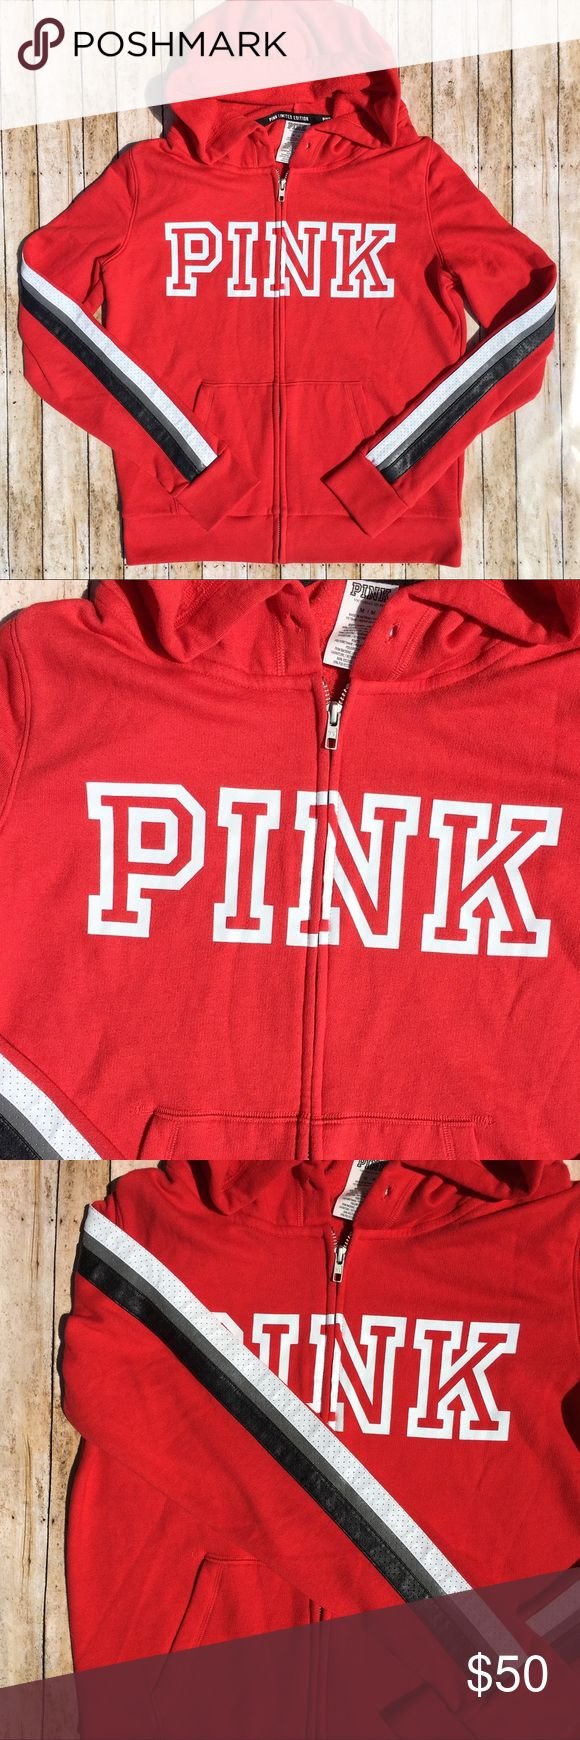 PINK Limited Edition Faux Leather Striped Hoodie PINK Victoria's Secret Limited Edition Faux Leather Striped Zip Up Hoodie. Excellent condition but missing hoodie strings PINK Victoria's Secret Tops Sweatshirts & Hoodies